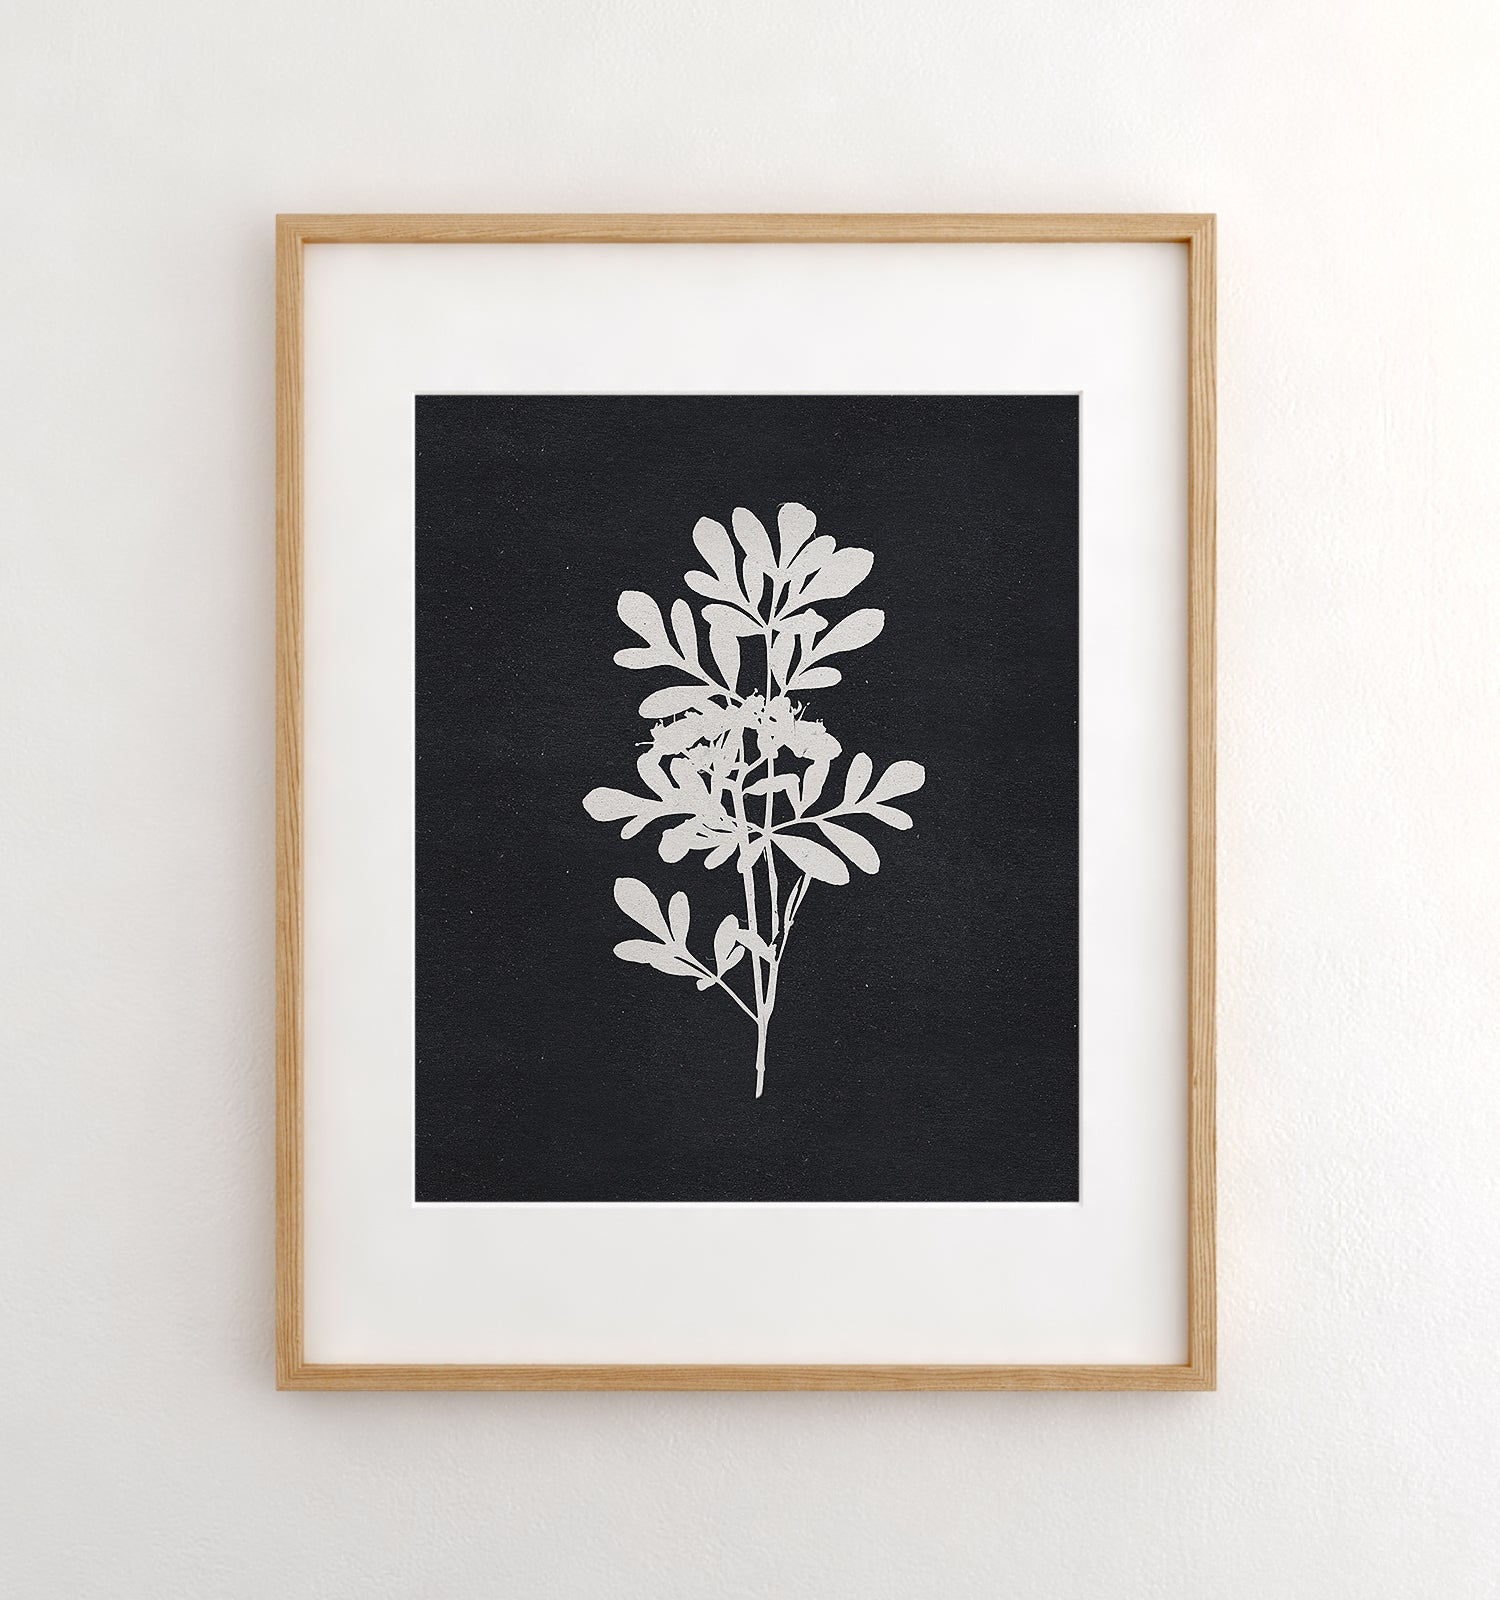 Botanical Silhouette No. 4